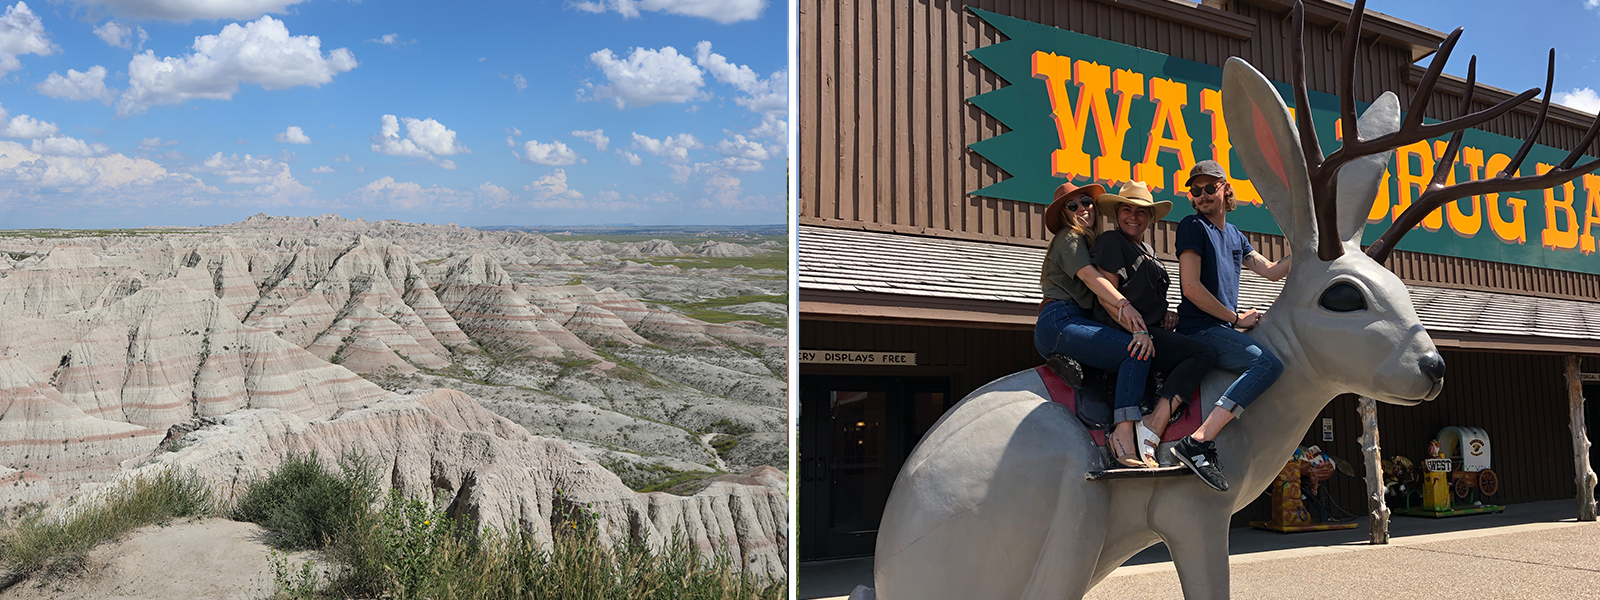 View of Badlands National Park. Group on top of a giant jackalope at the Wall Drug store